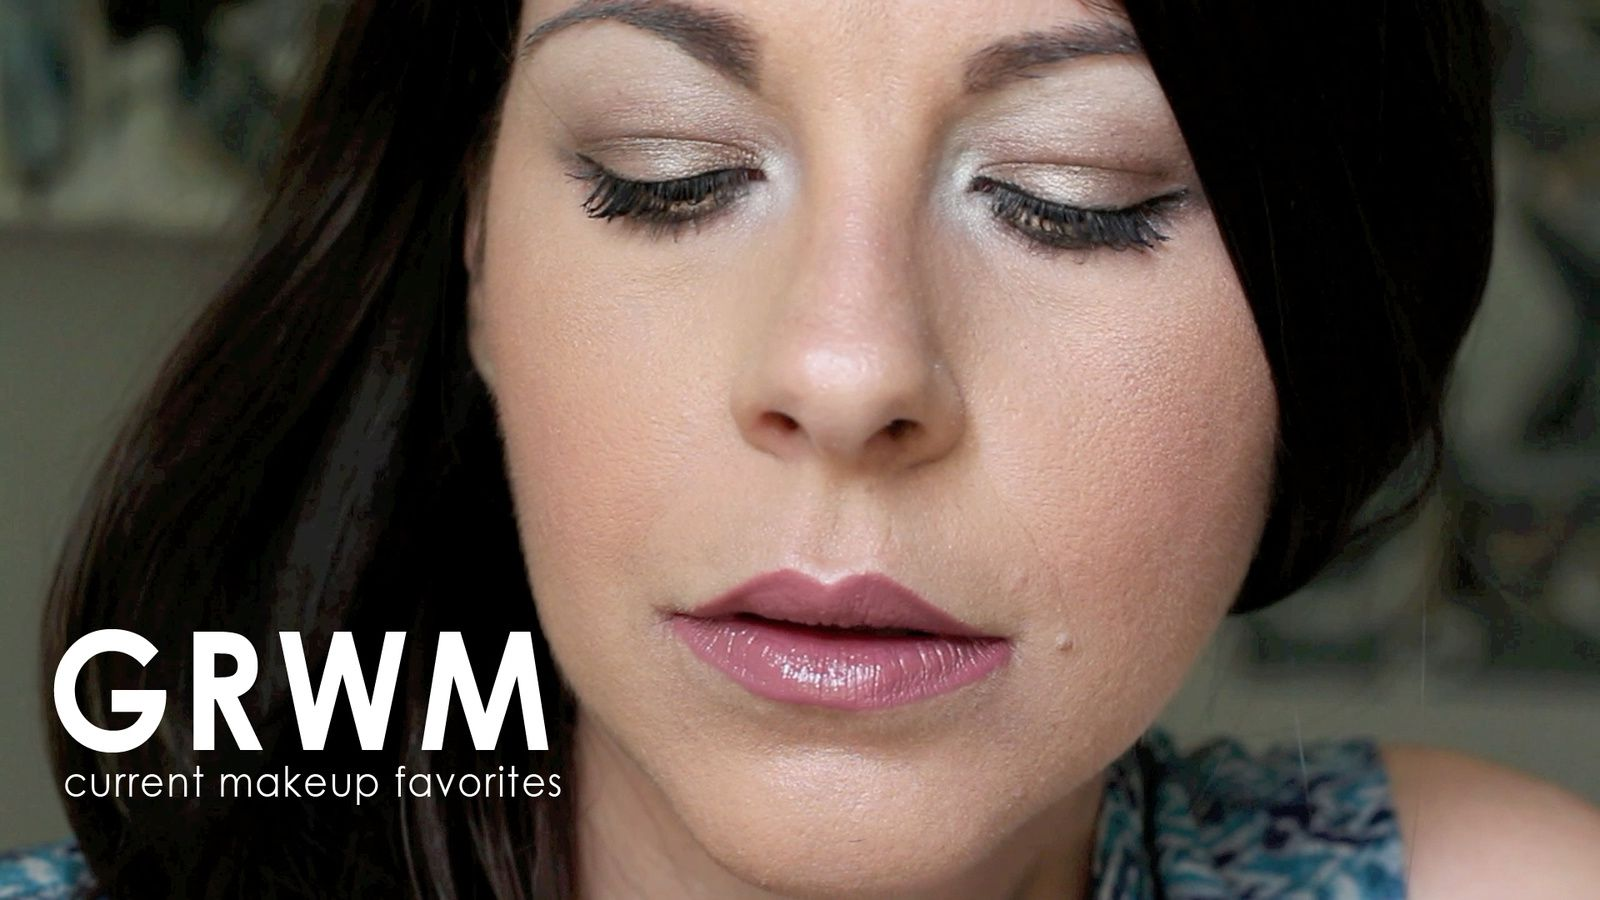 Get Ready With Me - Current Favorite Makeup Products